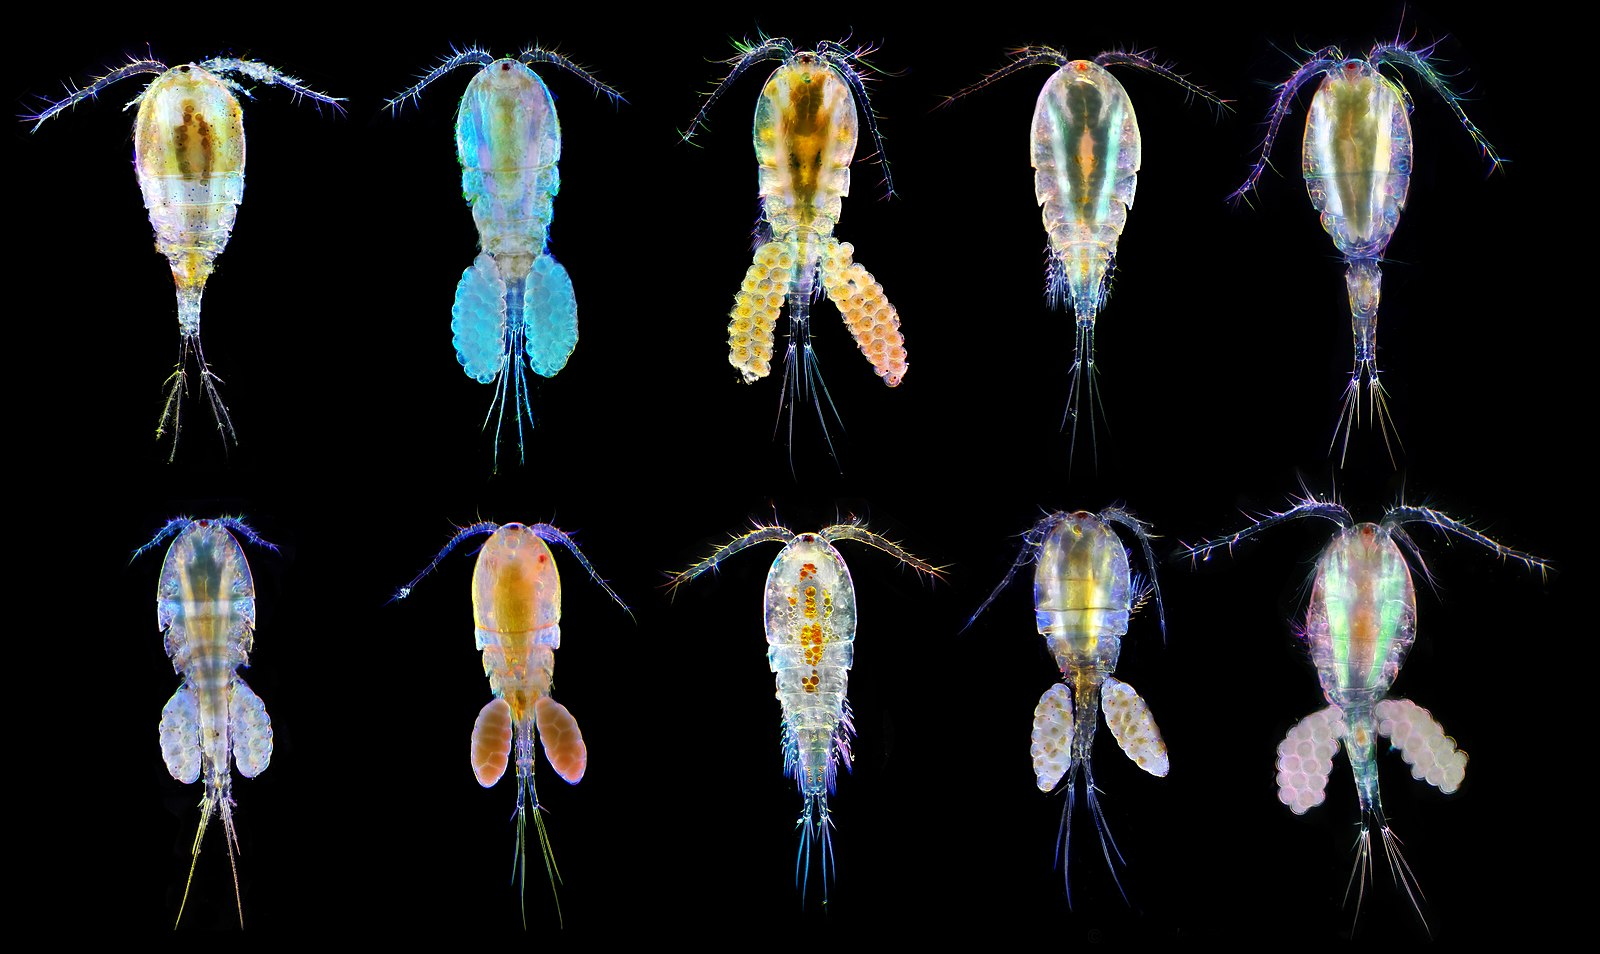 Copepods of different species imaged by a darkfield microscope with polarized light.